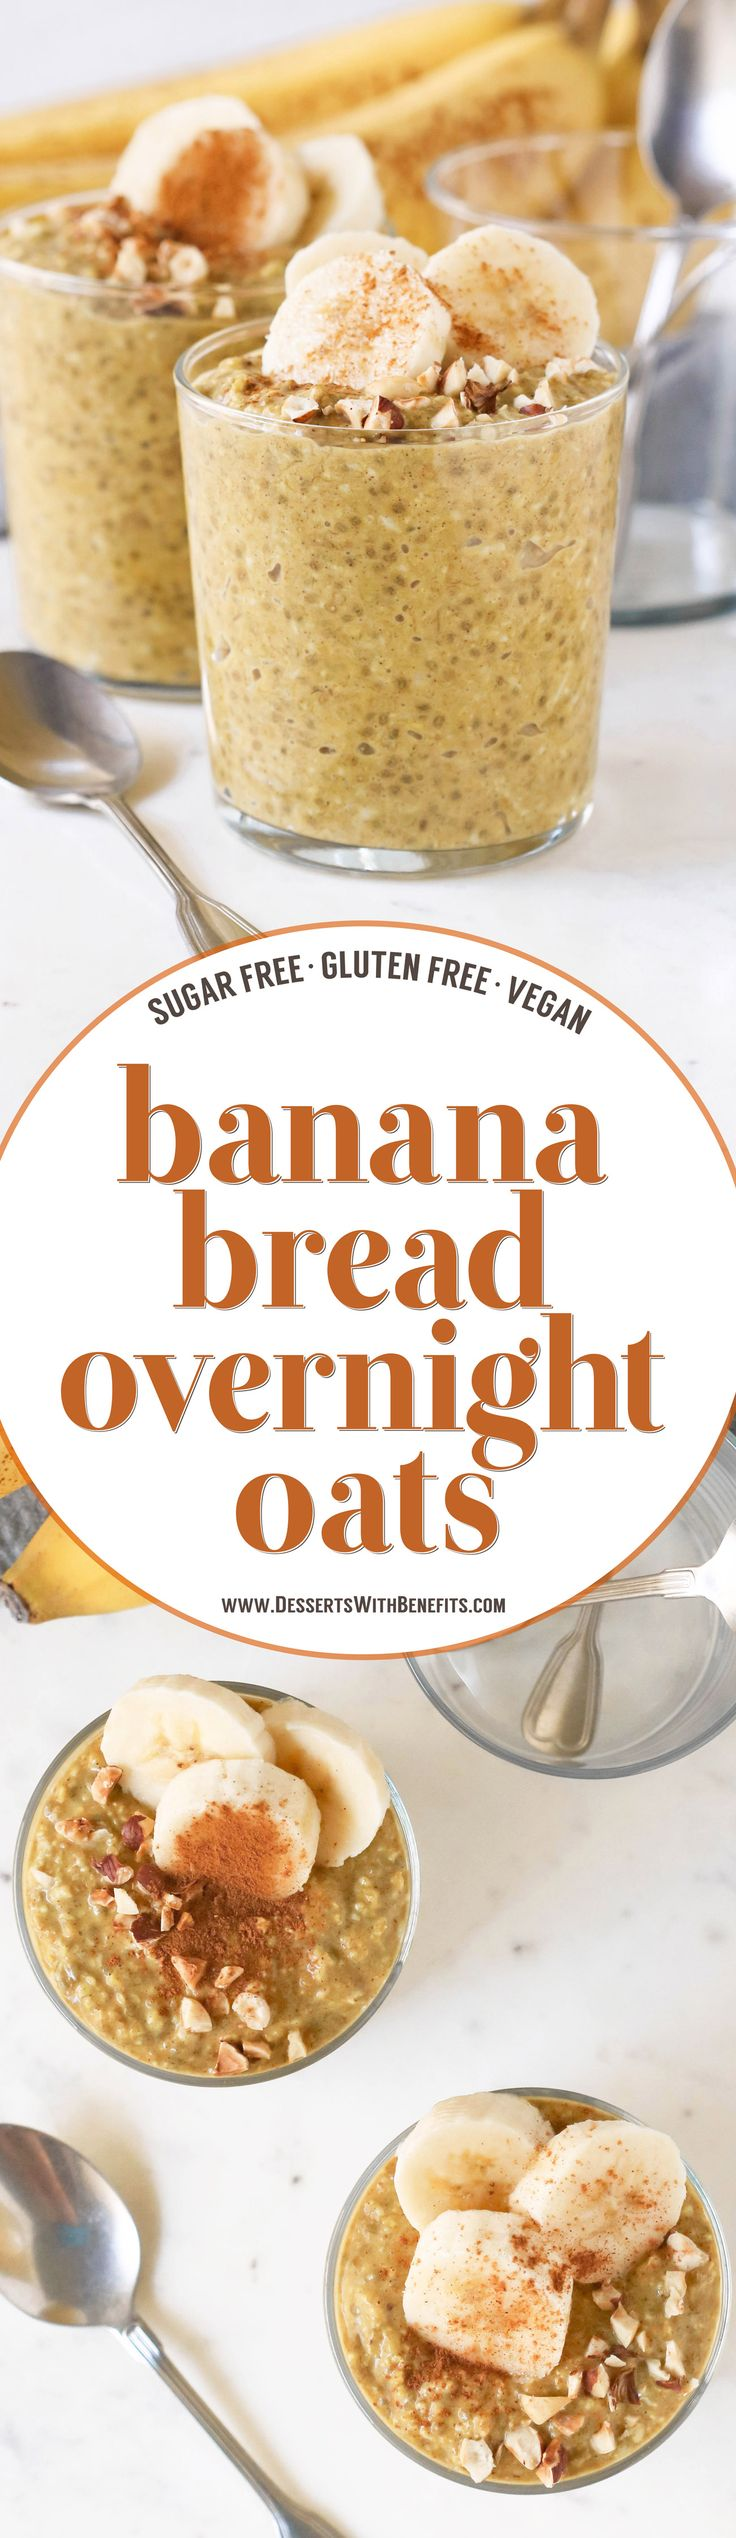 These Healthy Banana Bread Overnight Dessert Oats have all the flavor of Banana Bread but in oatmeal form, and without the butter, oil, and white sugar! This banana oatmeal is thick, sweet, and filling, and it's refined sugar free, low fat, high fiber, gluten free, dairy free, and vegan too!